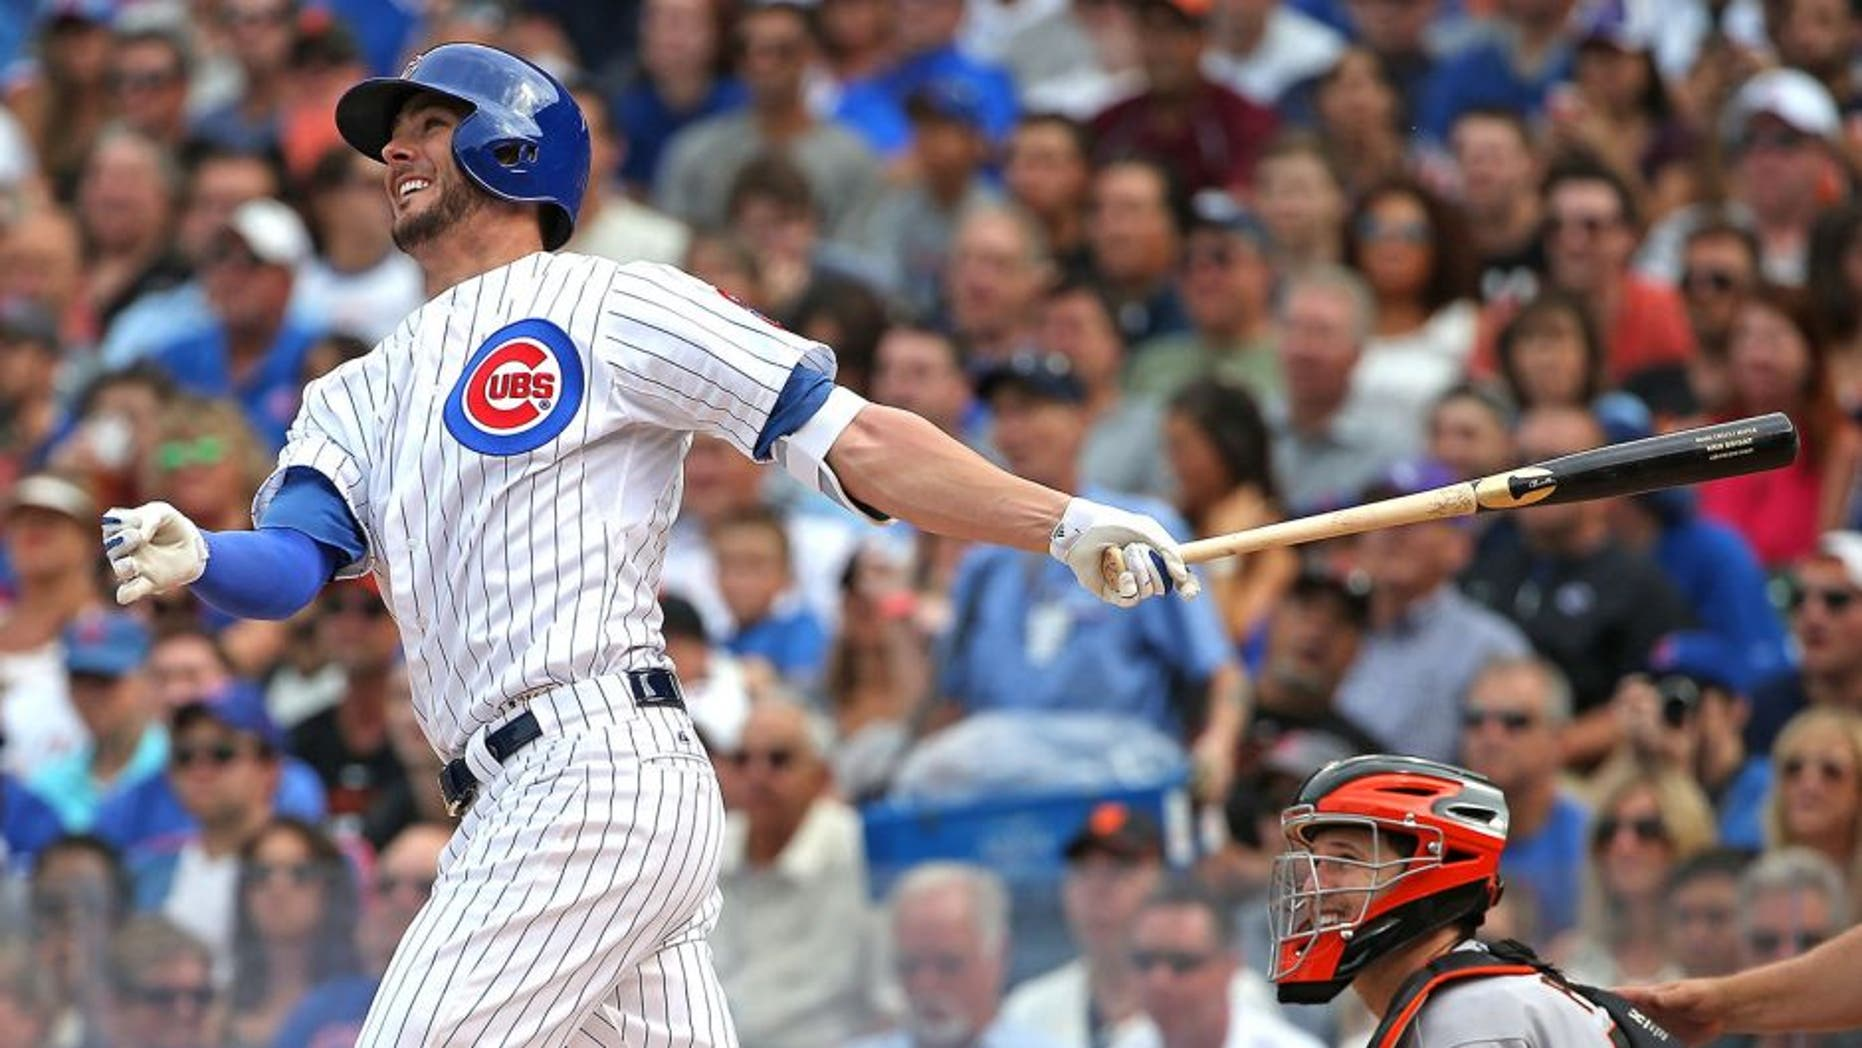 CHICAGO, IL - AUGUST 08: Kris Bryant #17 of the Chicago Cubs hits a two-run home run in the 3rd inning against the San Francisco Giants at Wrigley Field on August 8, 2015 in Chicago, Illinois. (Photo by Jonathan Daniel/Getty Images)